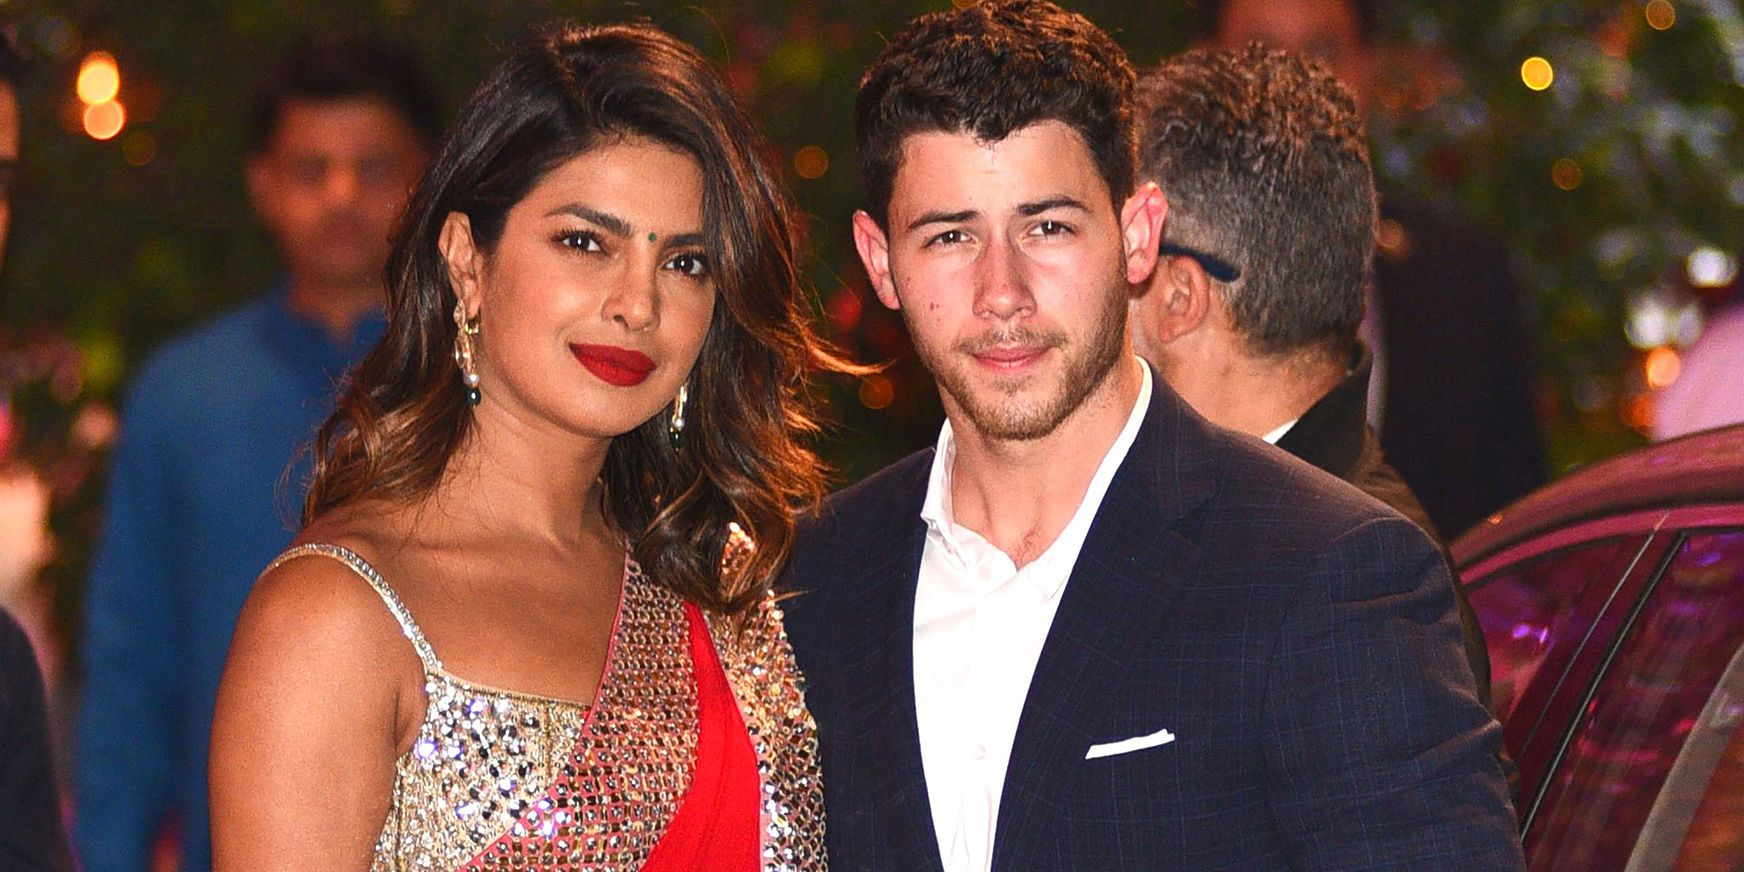 Priyanka Chopra S Engagement Ring Cost Nick Jonas 200 000 Reportedly